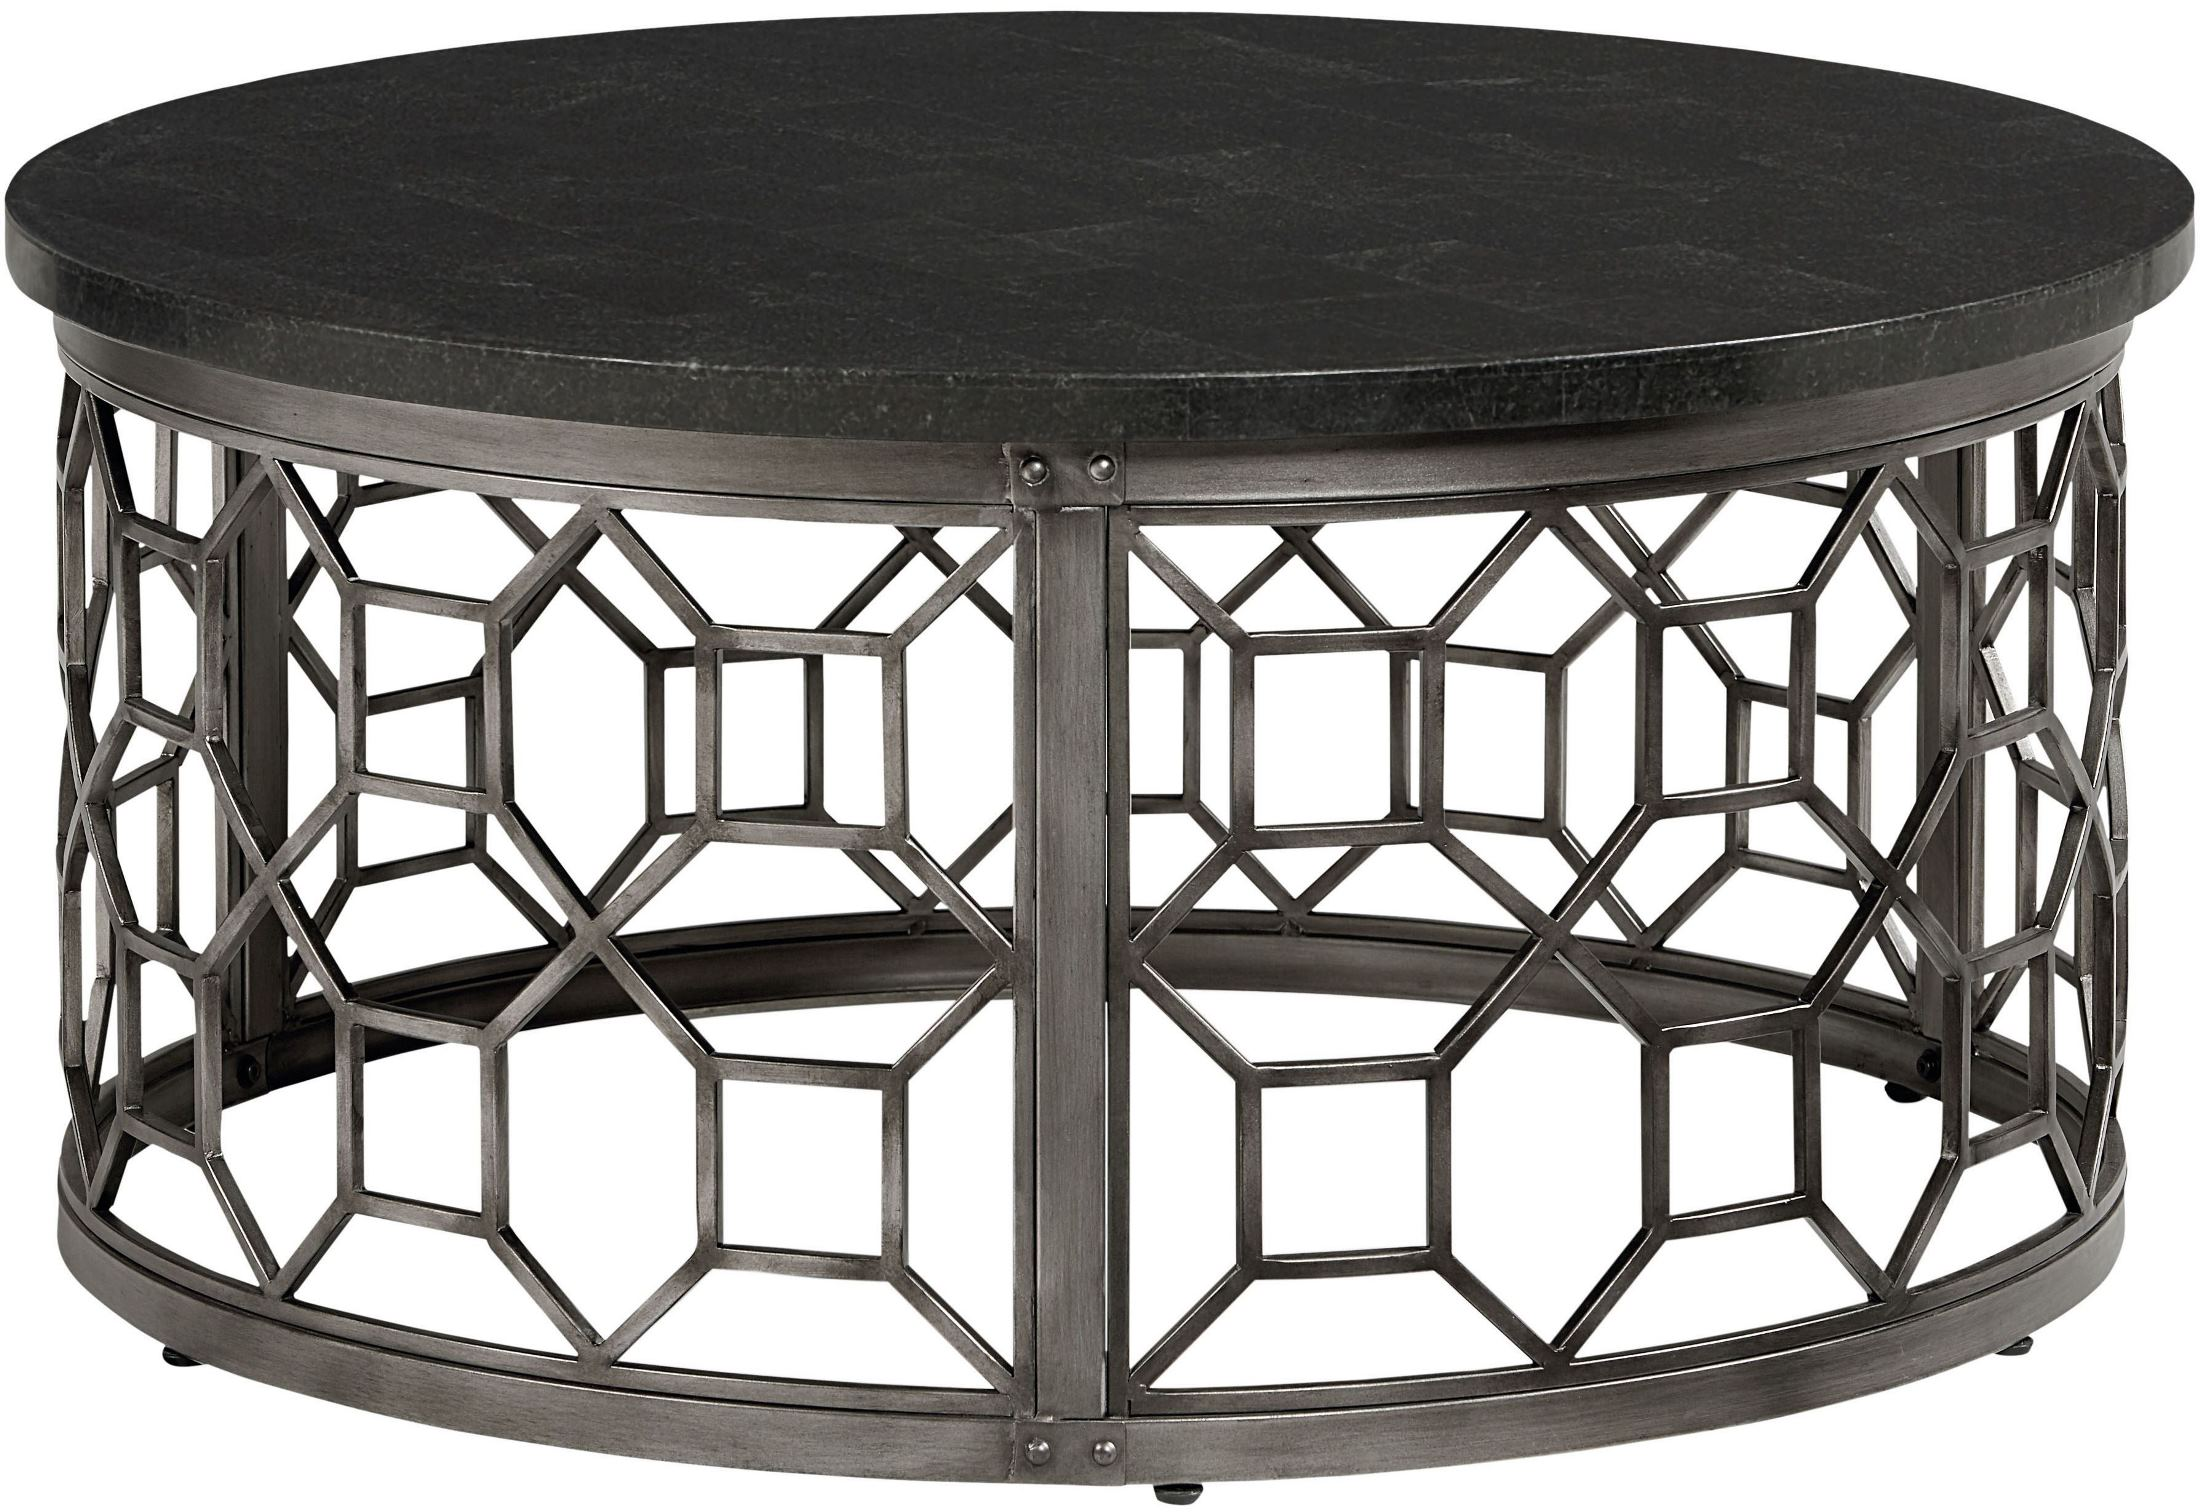 standard furniture equinox round stone top cocktail table equinox collection 4 reviews. Black Bedroom Furniture Sets. Home Design Ideas